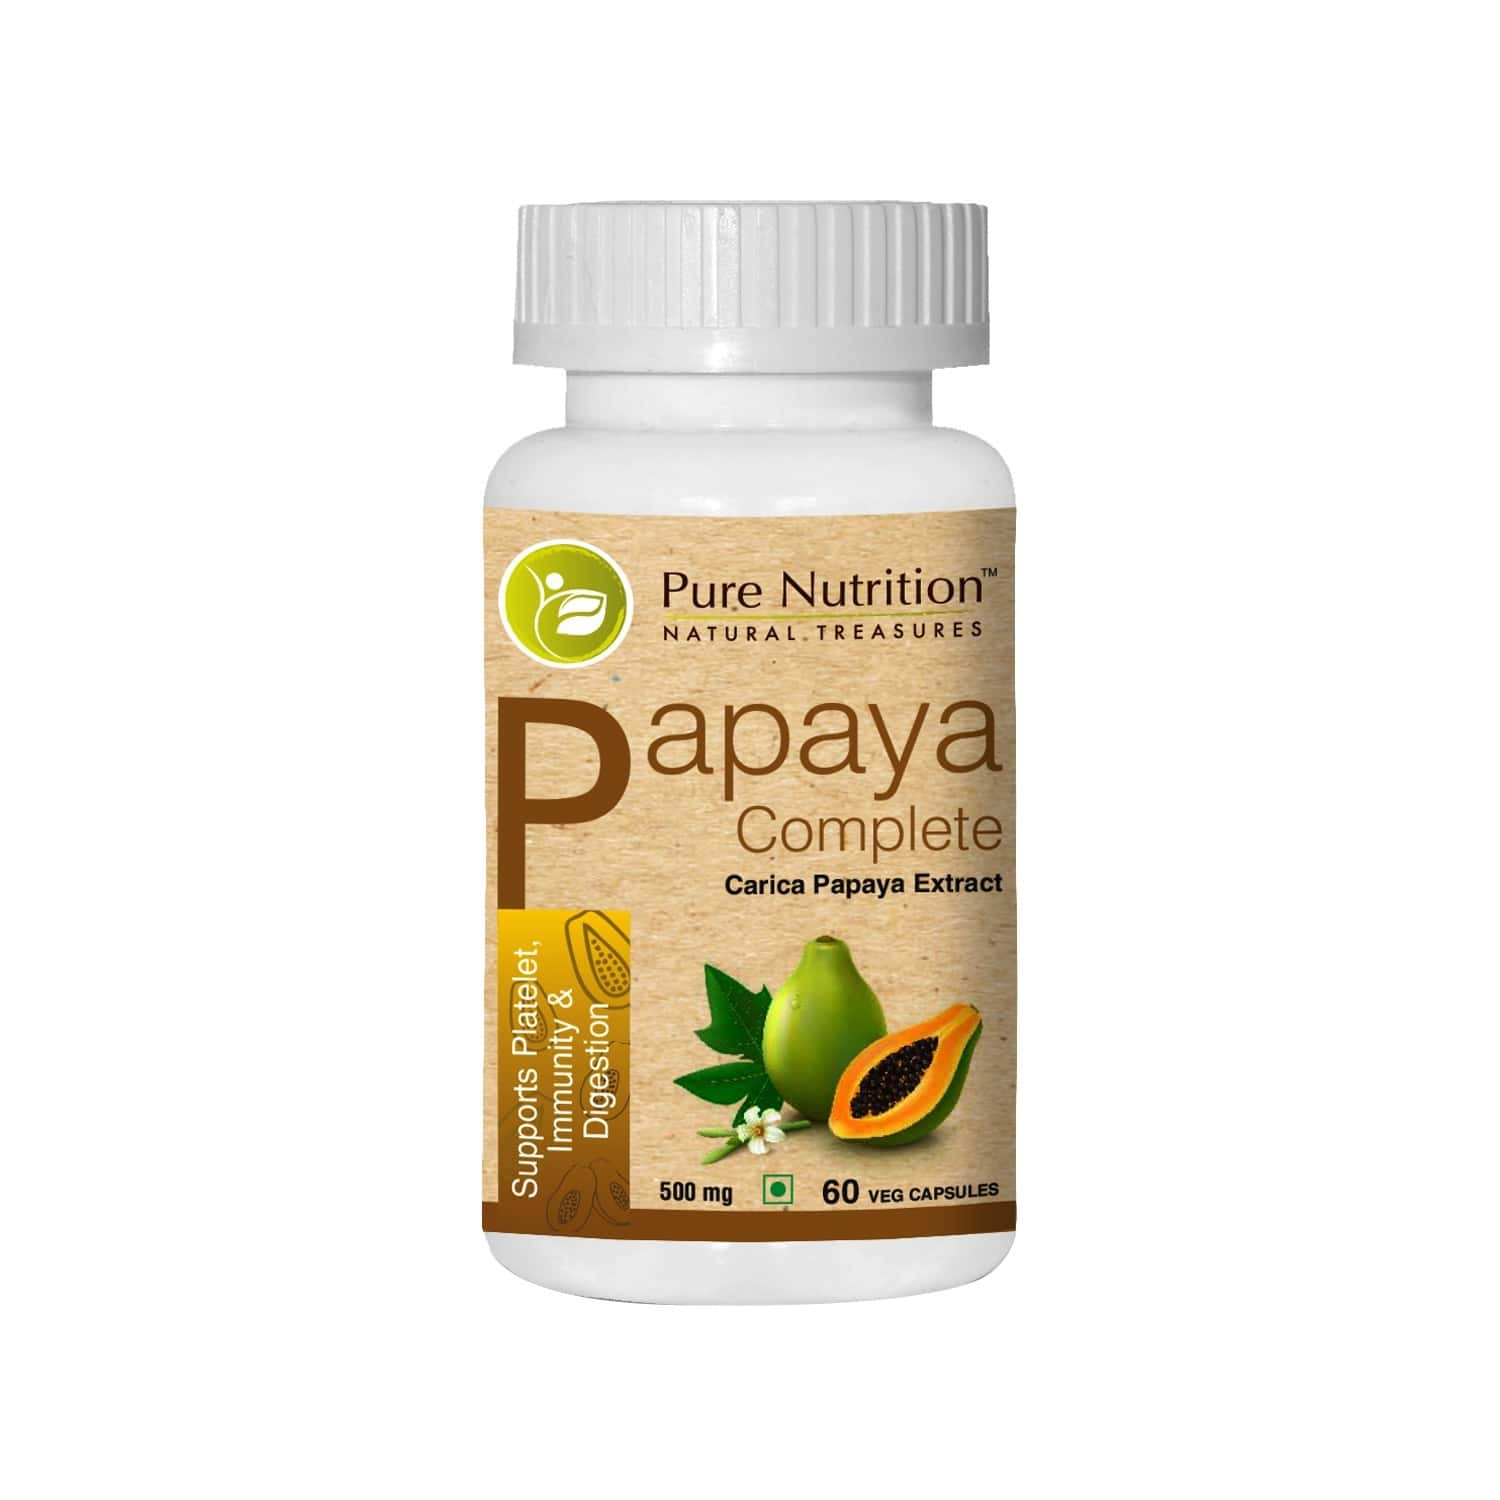 Pure Nutrition Papaya Complete (supports Platelet Immunity & Digestion) - 60 Caps